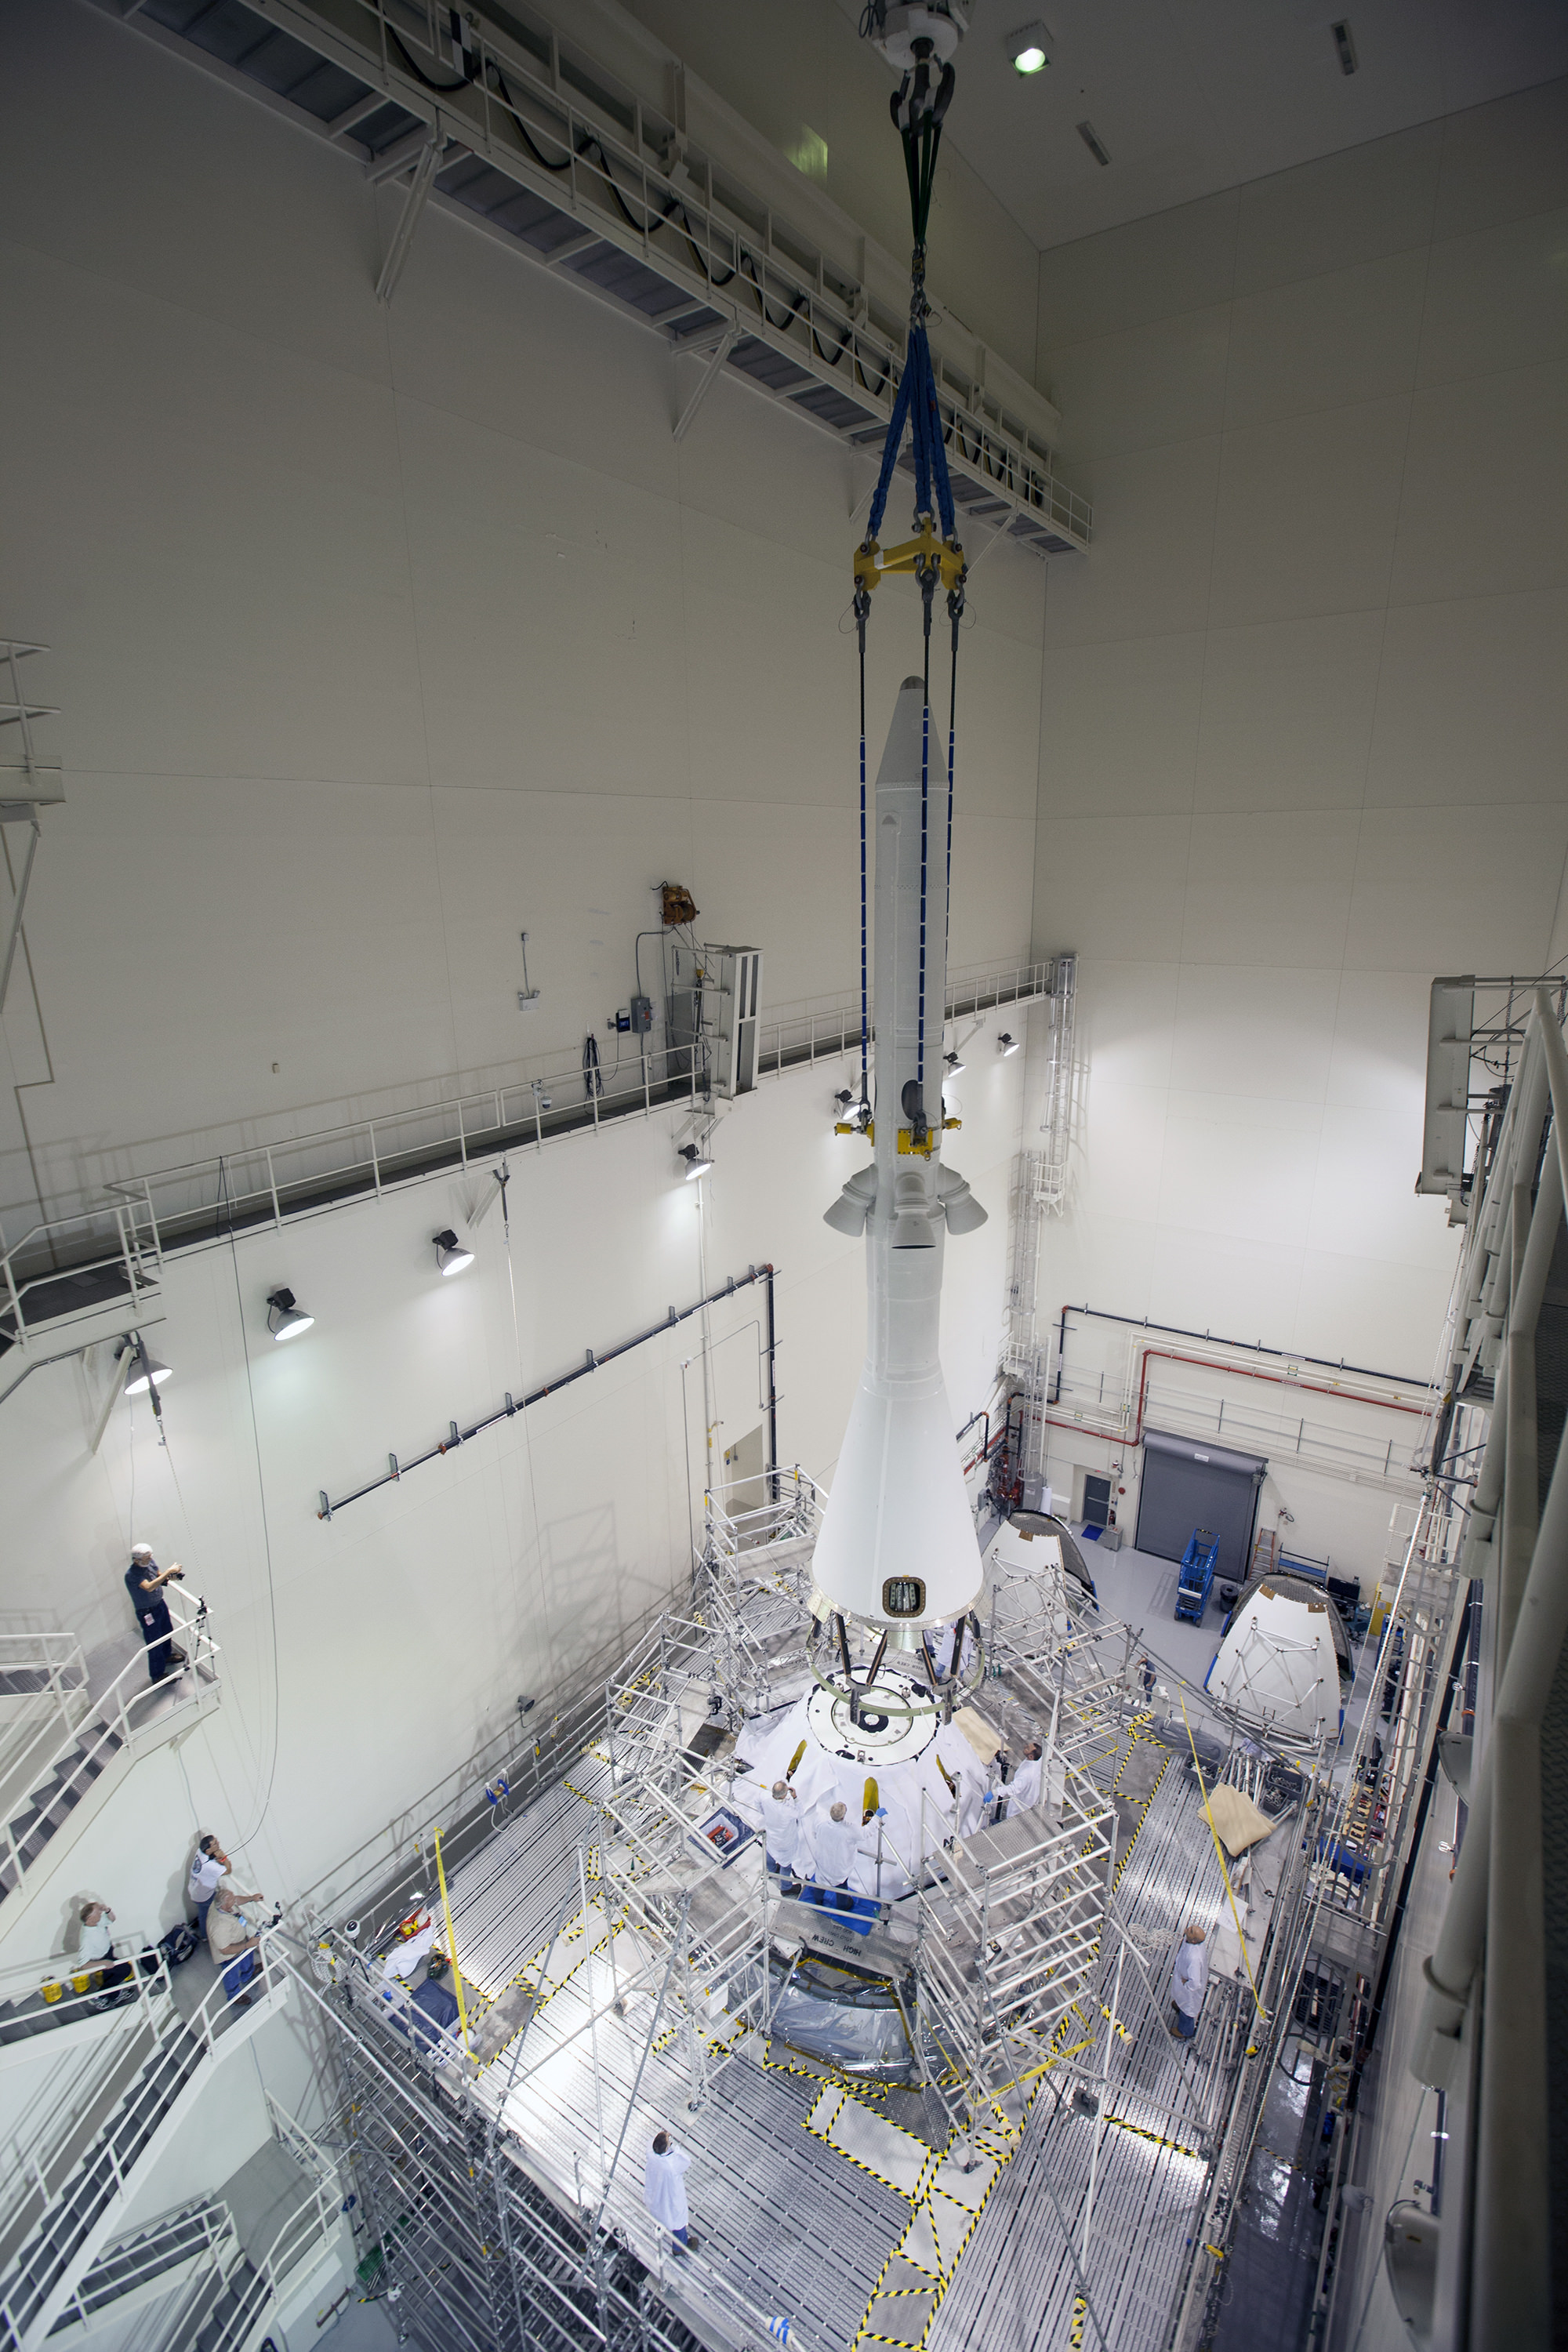 The launch abort system is lowered by crane for installation on the Orion spacecraft for Exploration Flight Test-1 inside the Launch Abort System Facility, or LASF, at NASA's Kennedy Space Center in Florida.   Photo credit: NASA/Cory Huston